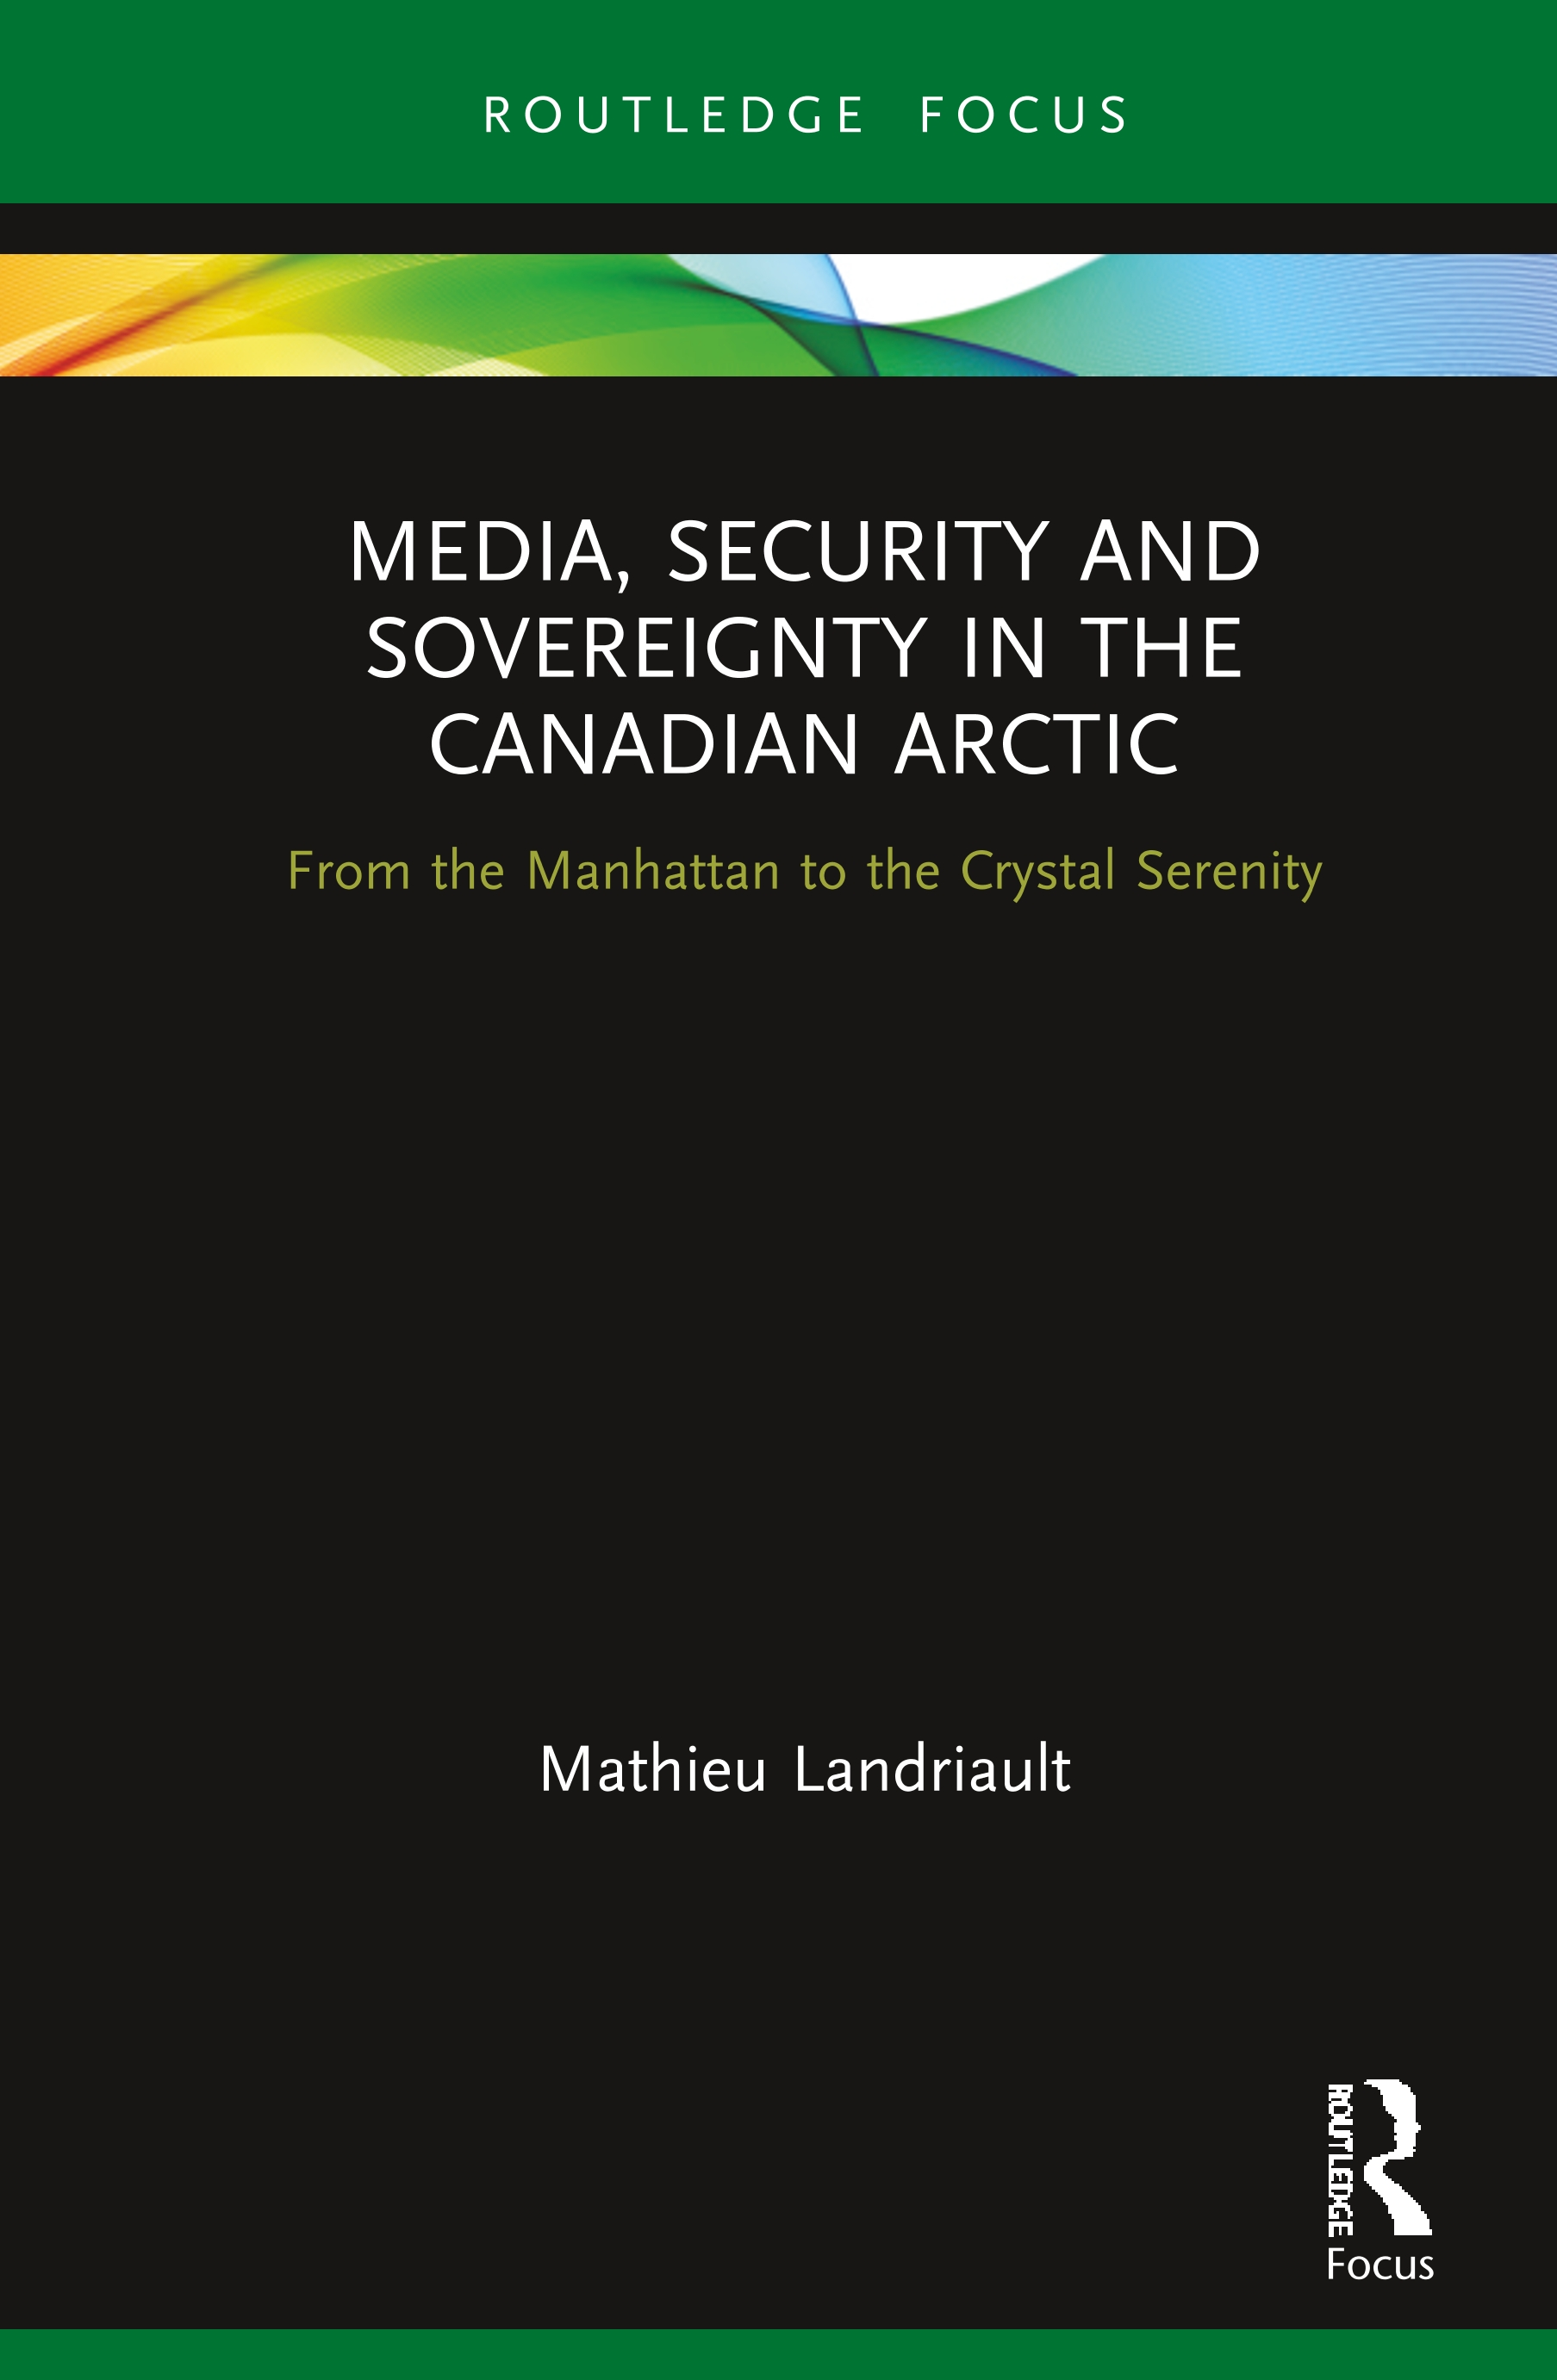 Media, Security and Sovereignty in the Canadian Arctic: From the Manhattan to the Crystal Serenity book cover